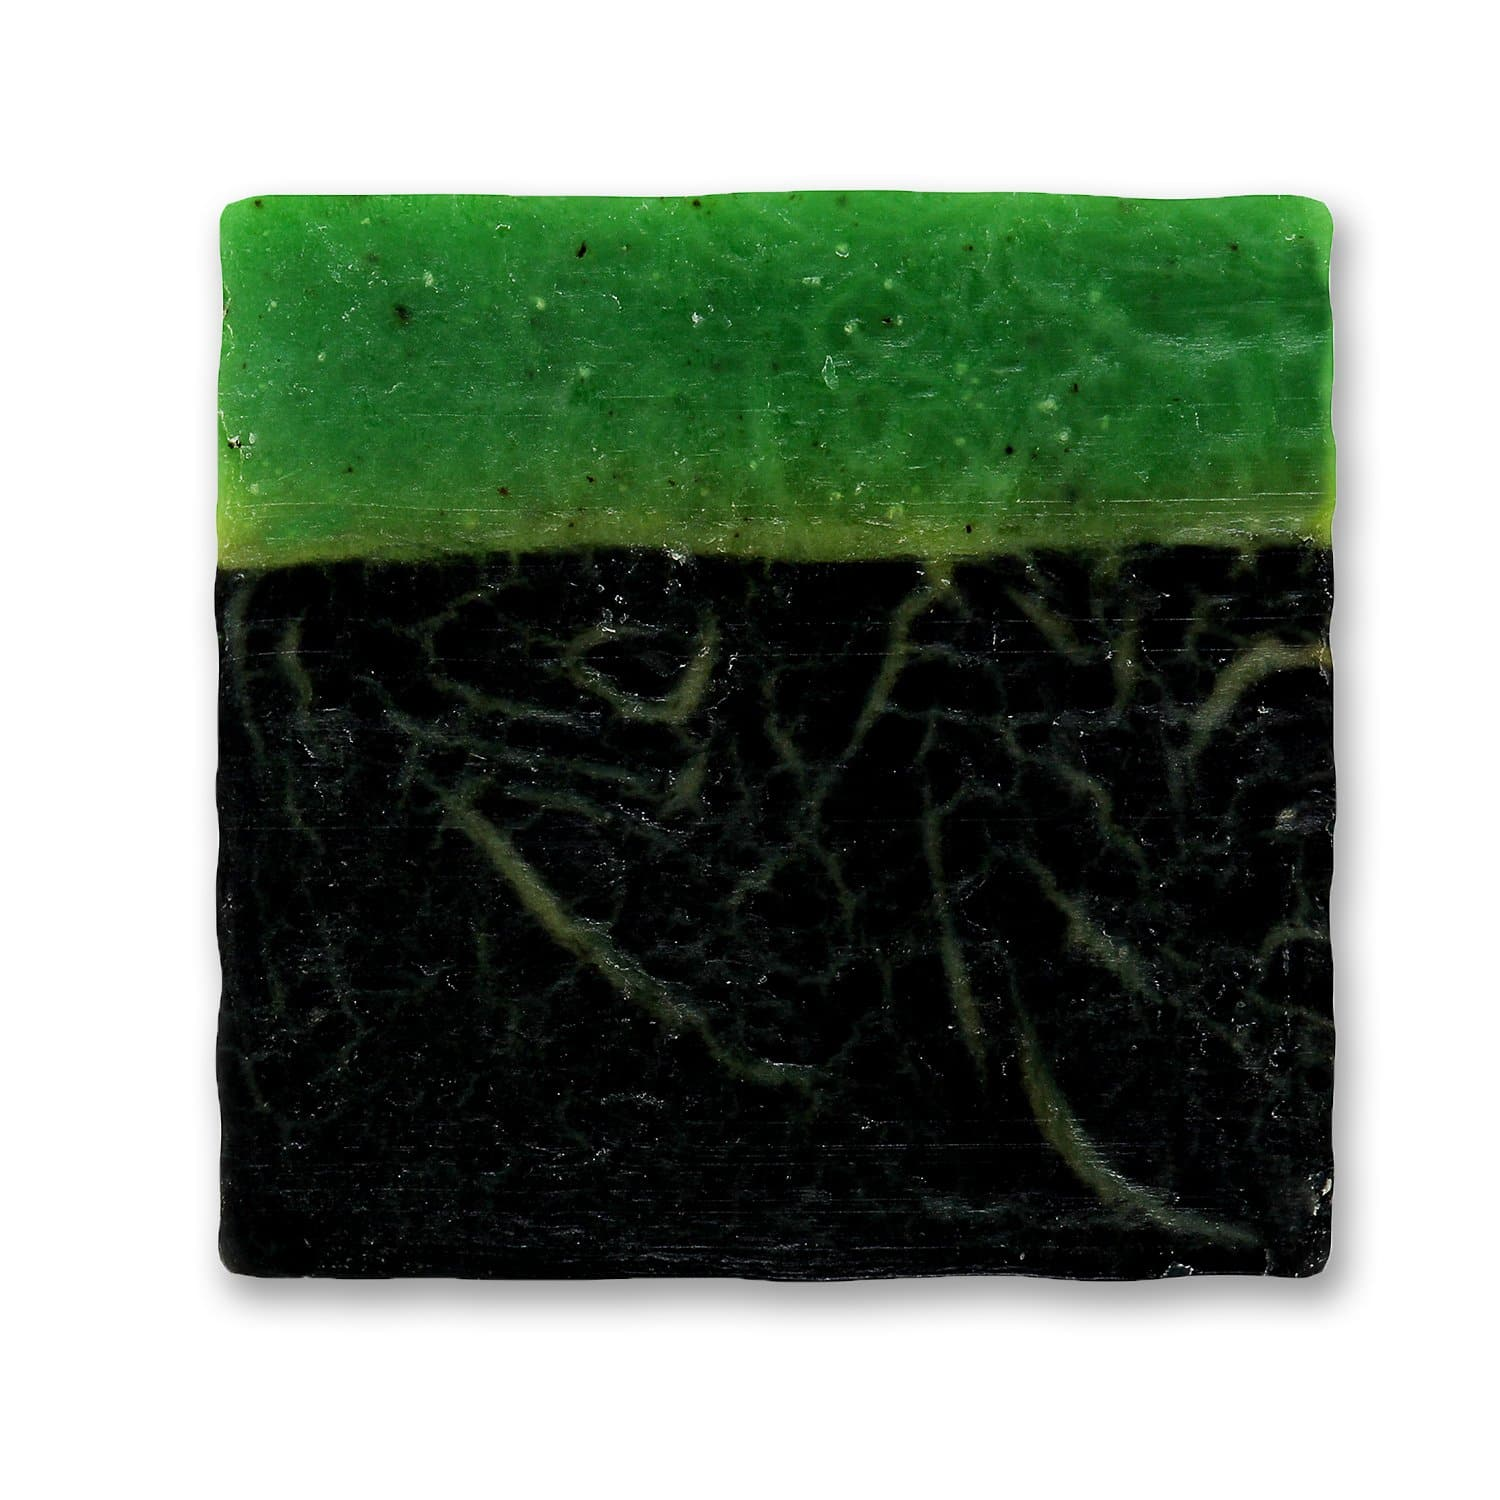 Activated Charcoal & Green Tea Soap, Anti-Acne, Pimples & Tan Removal, 100g